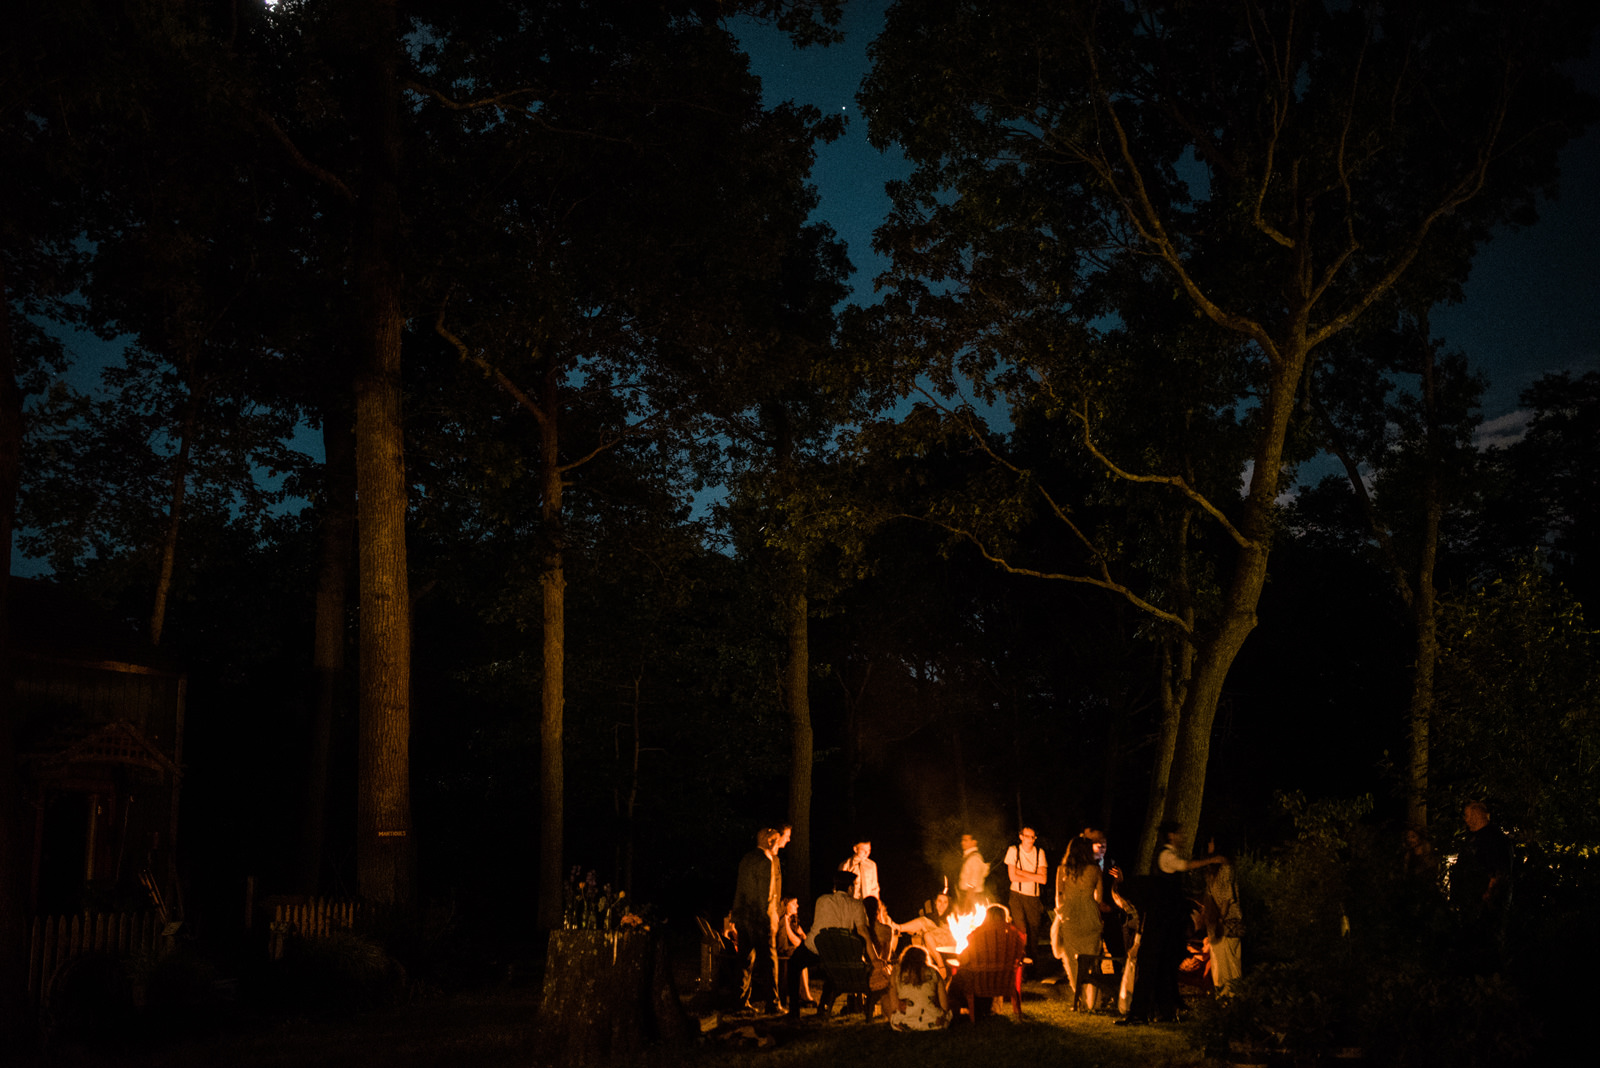 207-wedding-party-around-bonfire-at-the-peconic-river-herb-farm-by-brooklyn-photographer.jpg